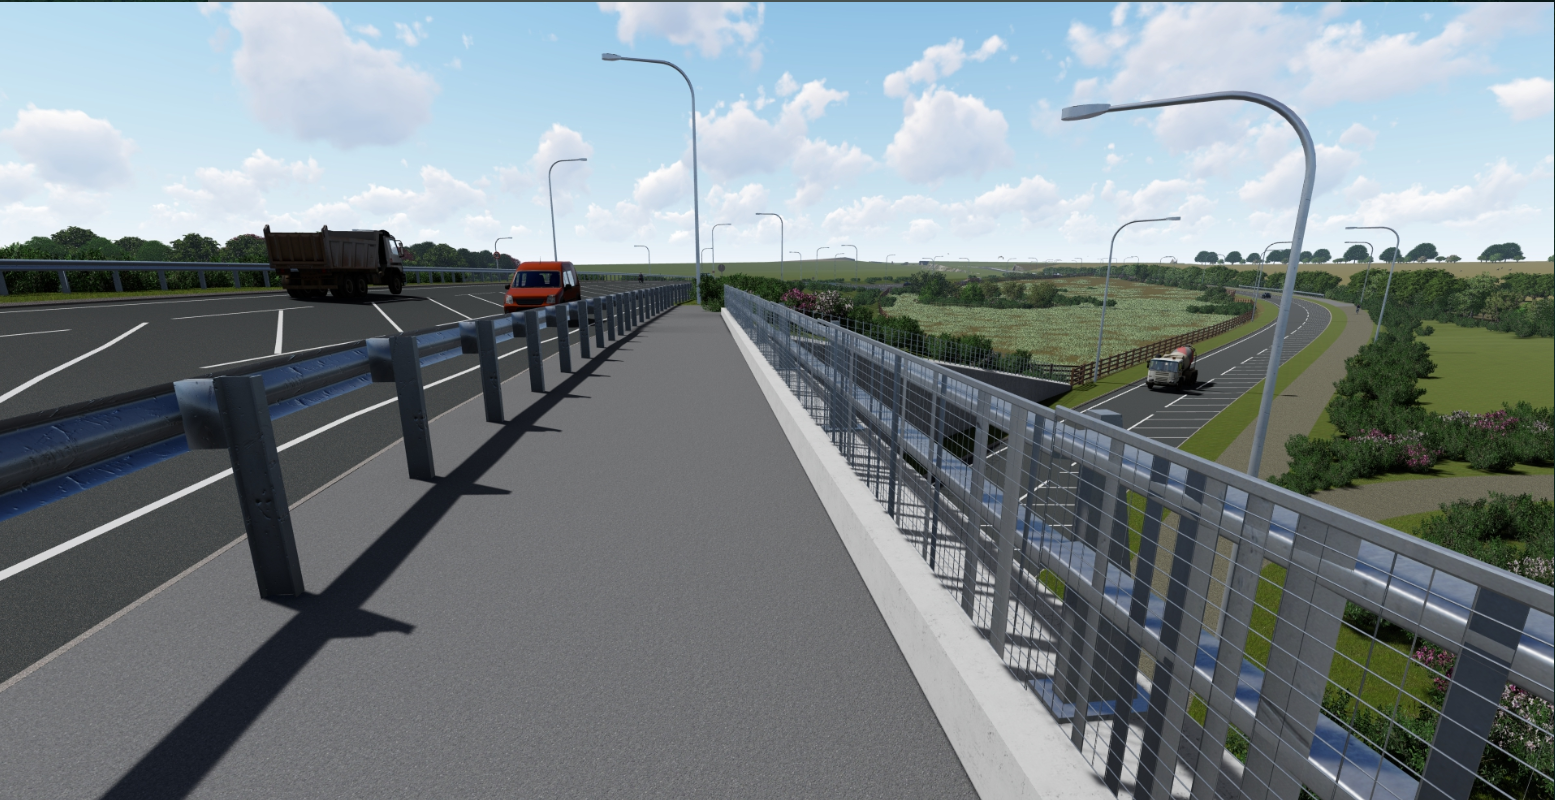 View on the new A164 bridge